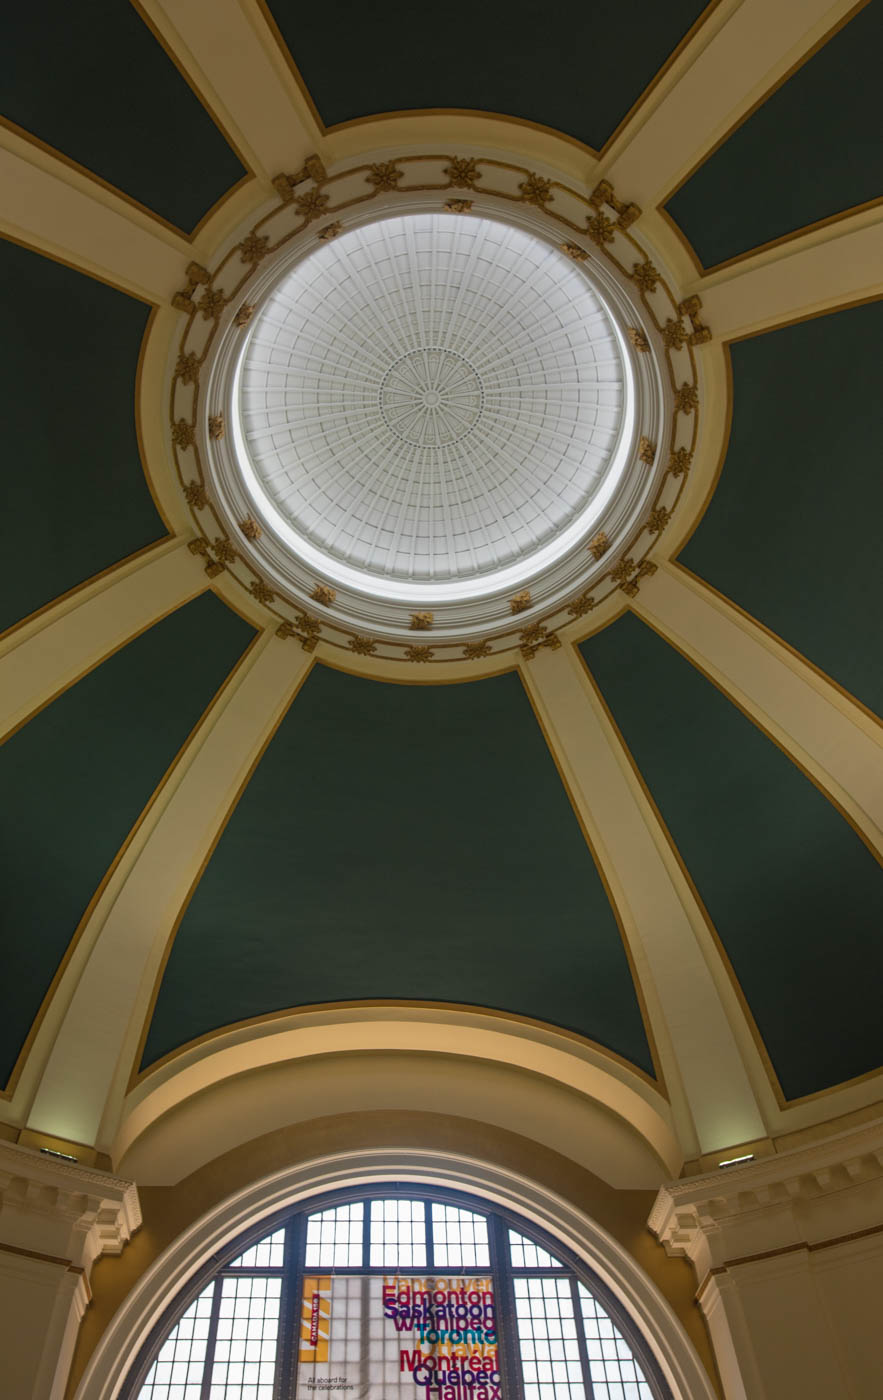 Train station dome